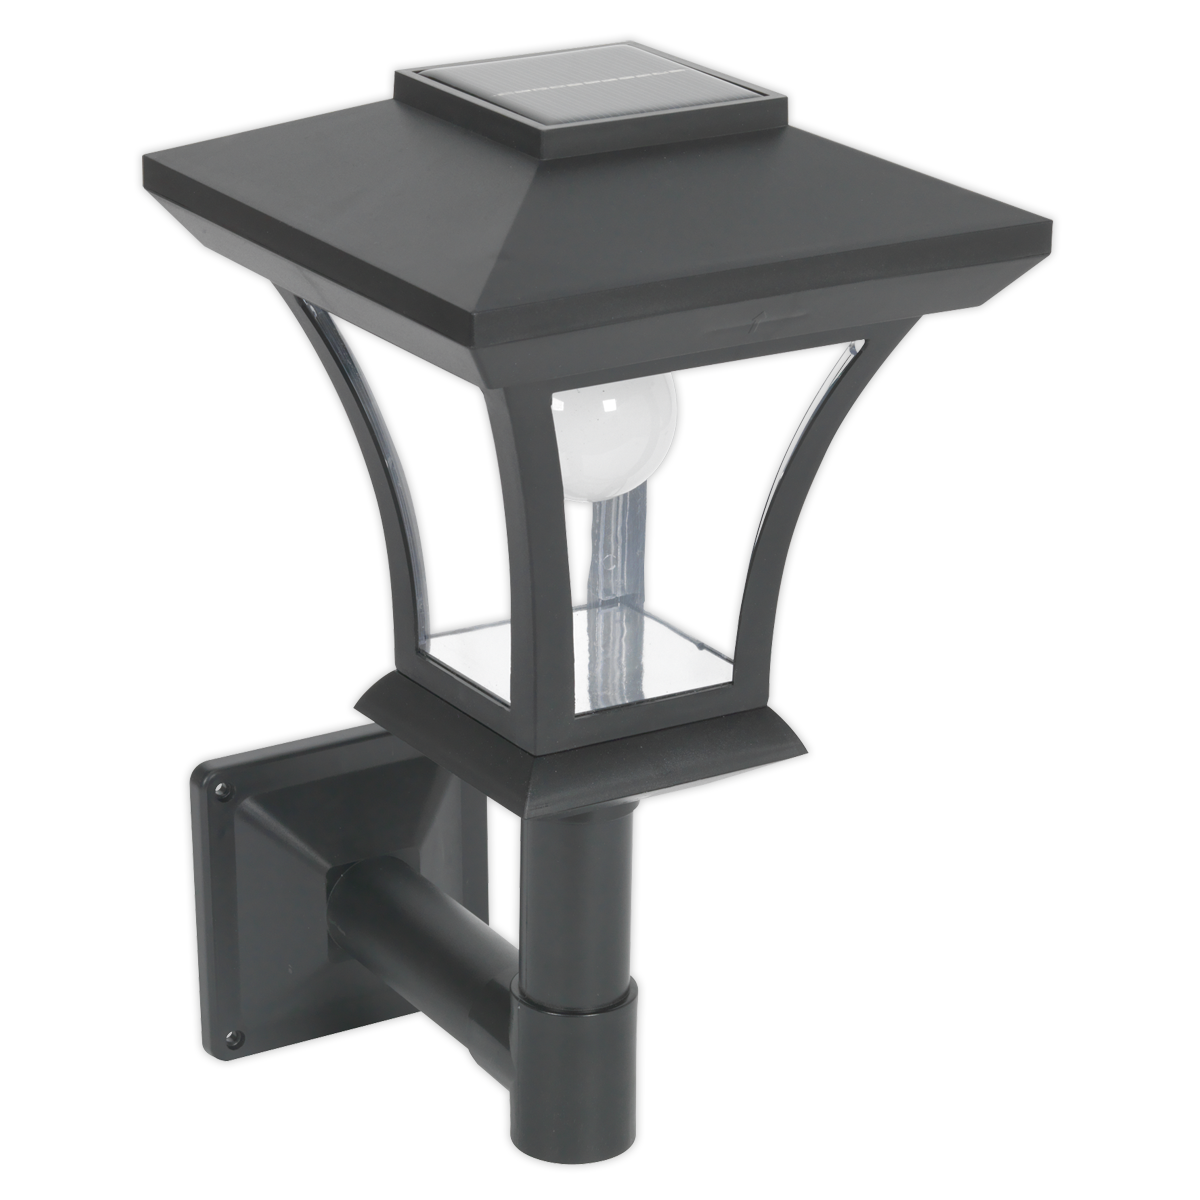 - Solar Powerot LED Garden Lamp Wall Mounting SEALEY GL61 by Sealey